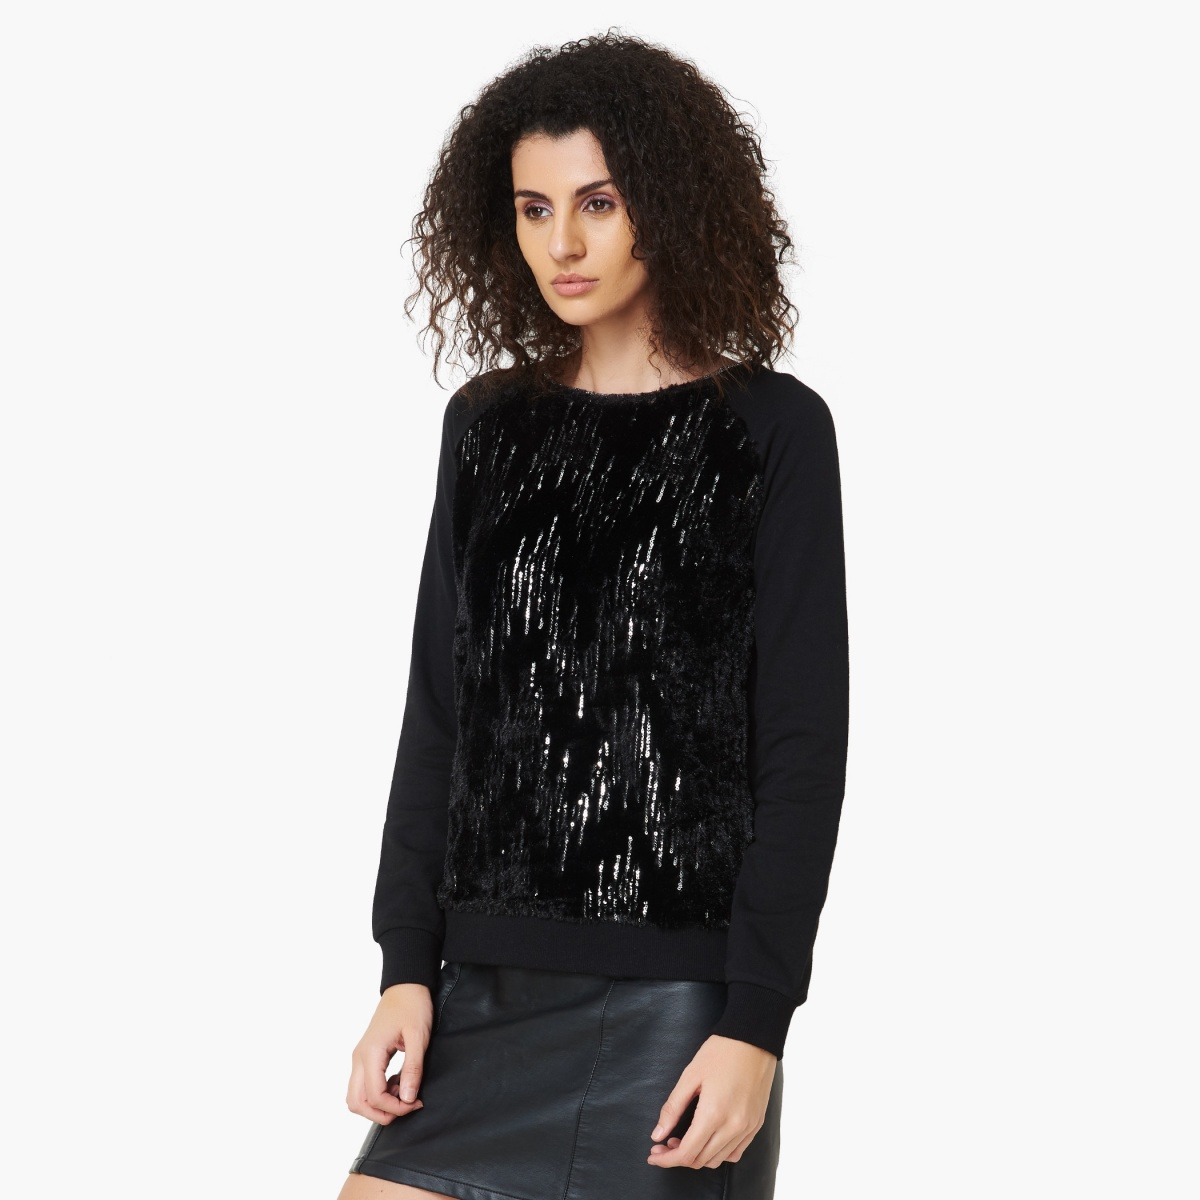 Max Fashion Offer : Sequined Full Sleeves Sweatshirt at Rs.699